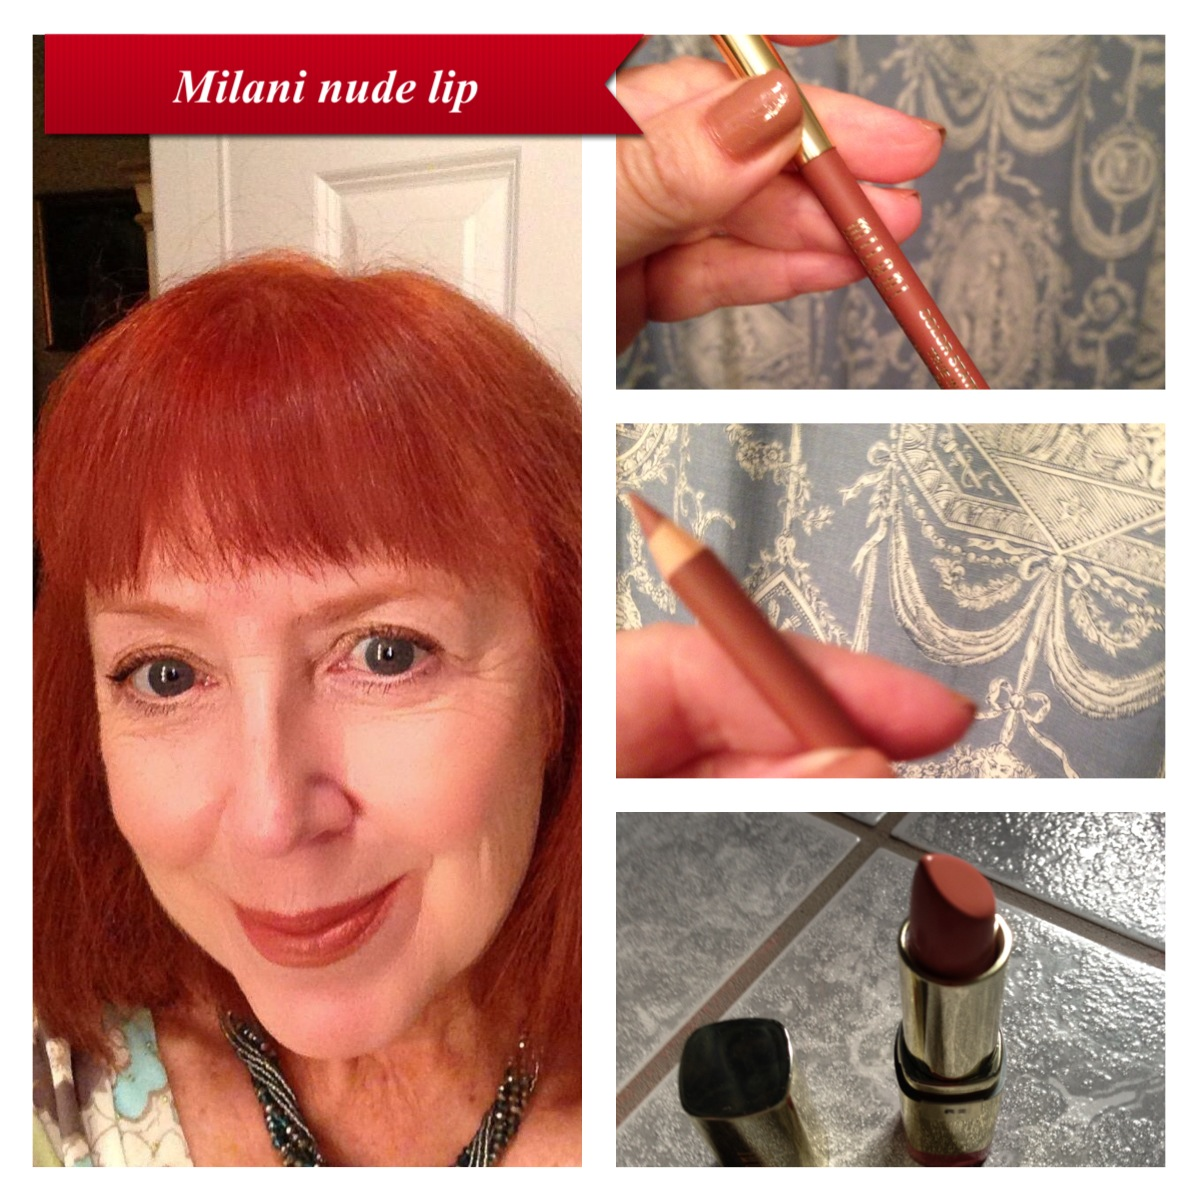 Milani Naturally Chic Lipstick Milani Naturally Chic Lipstick